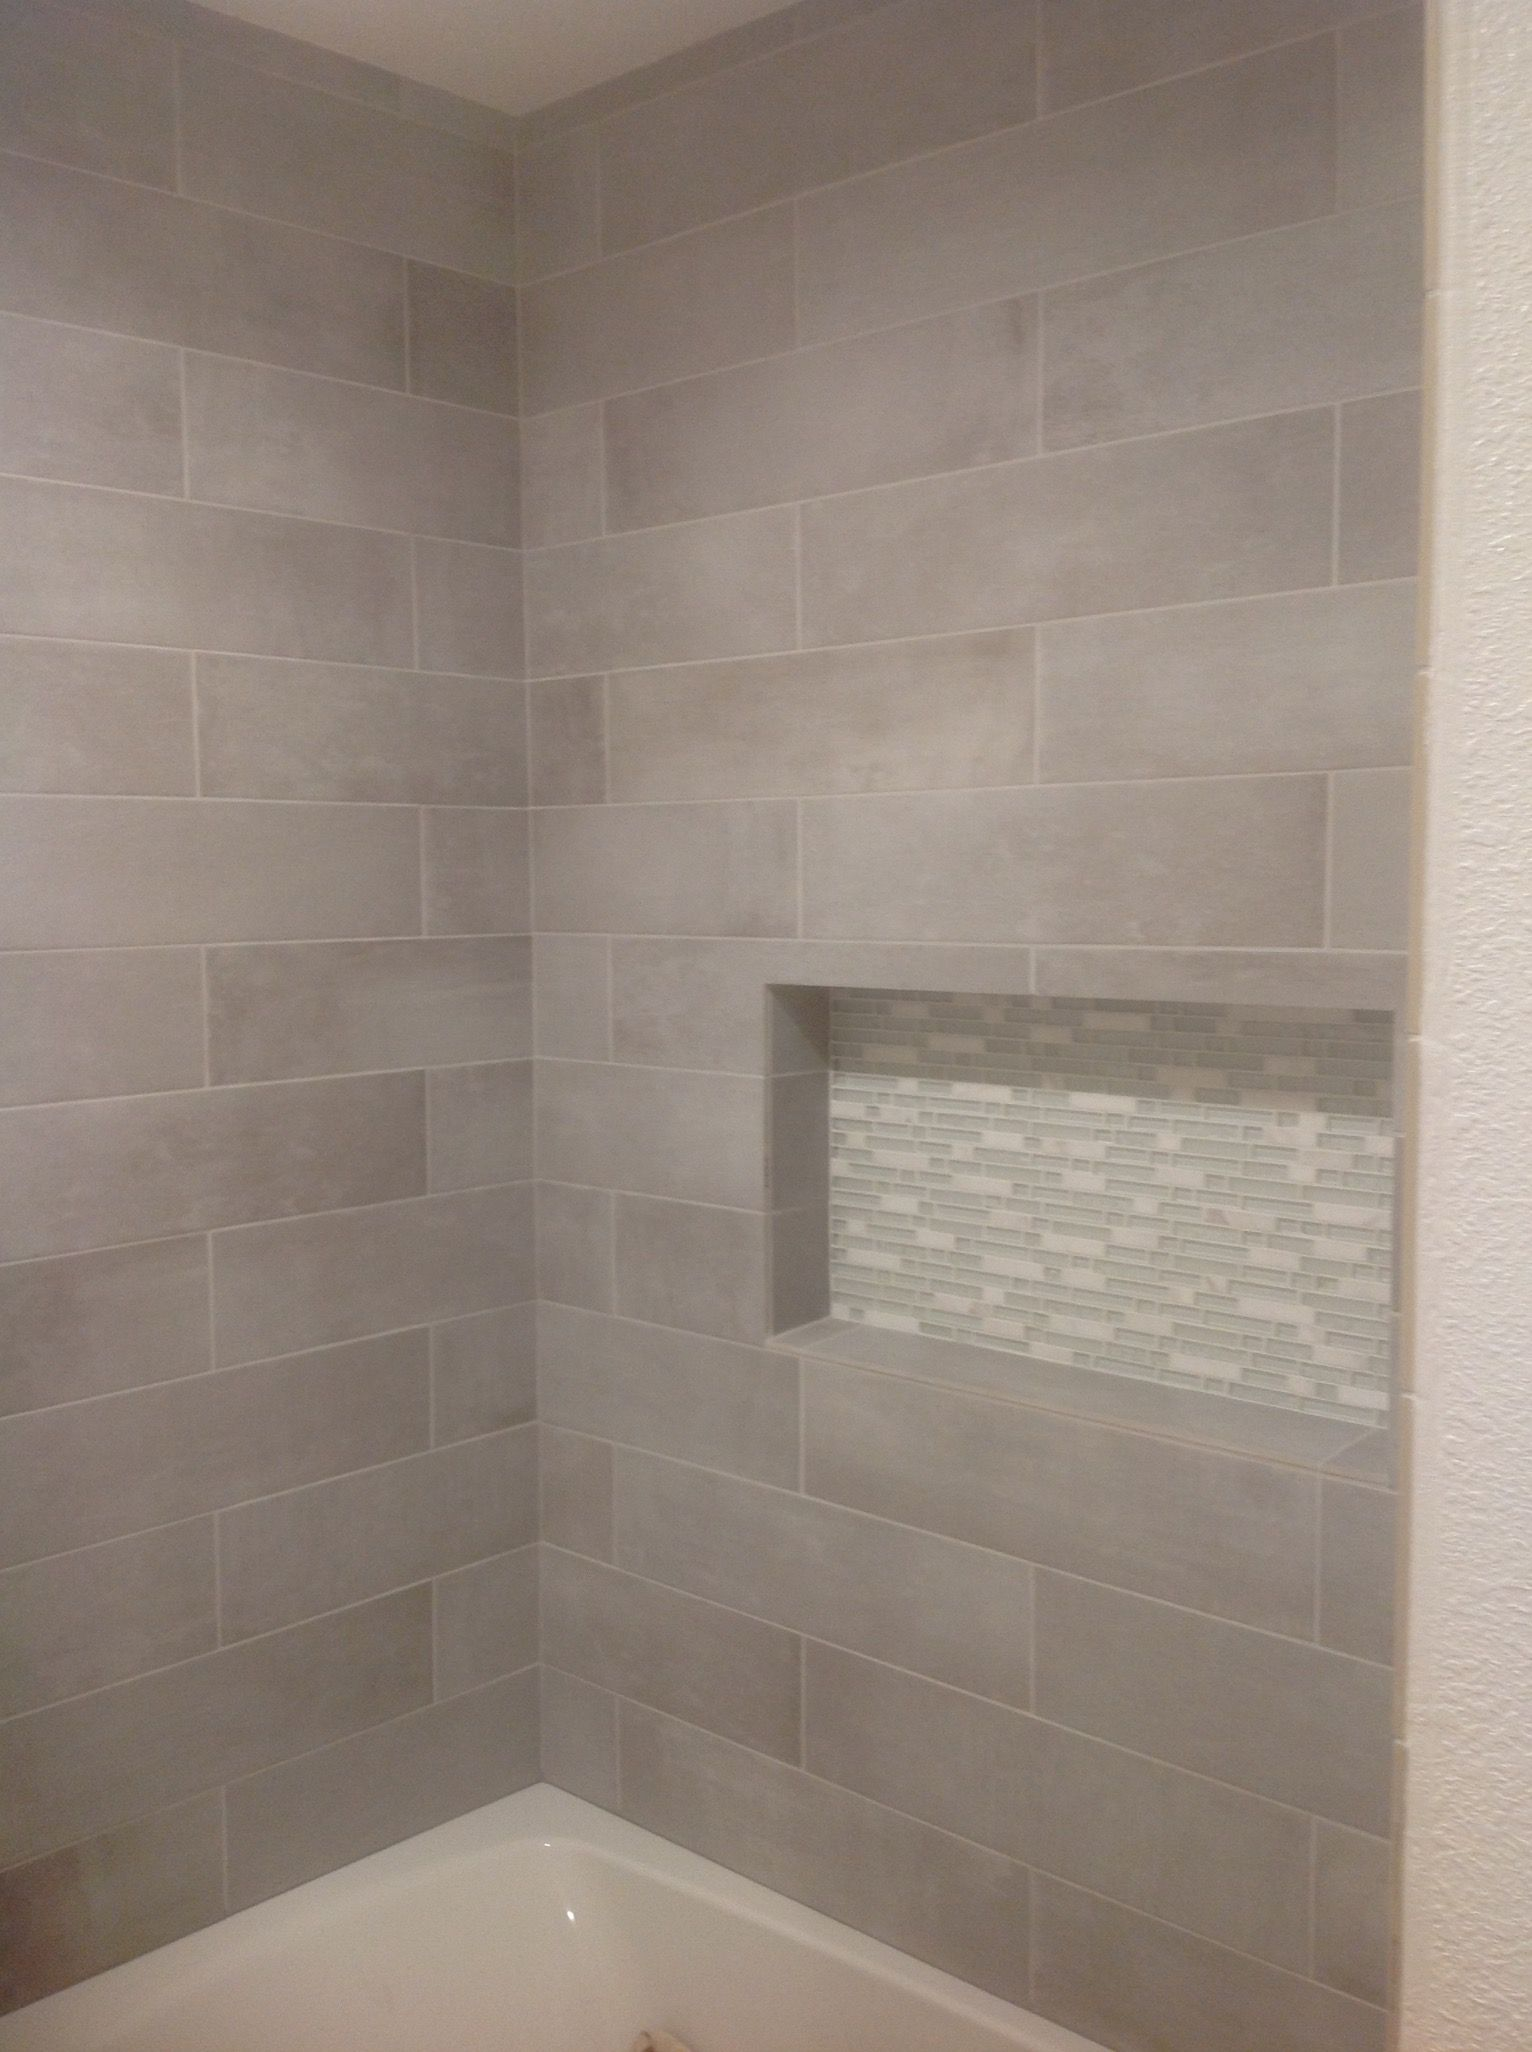 Ordinaire Cityside Gray Porcelain Tile From Lowes